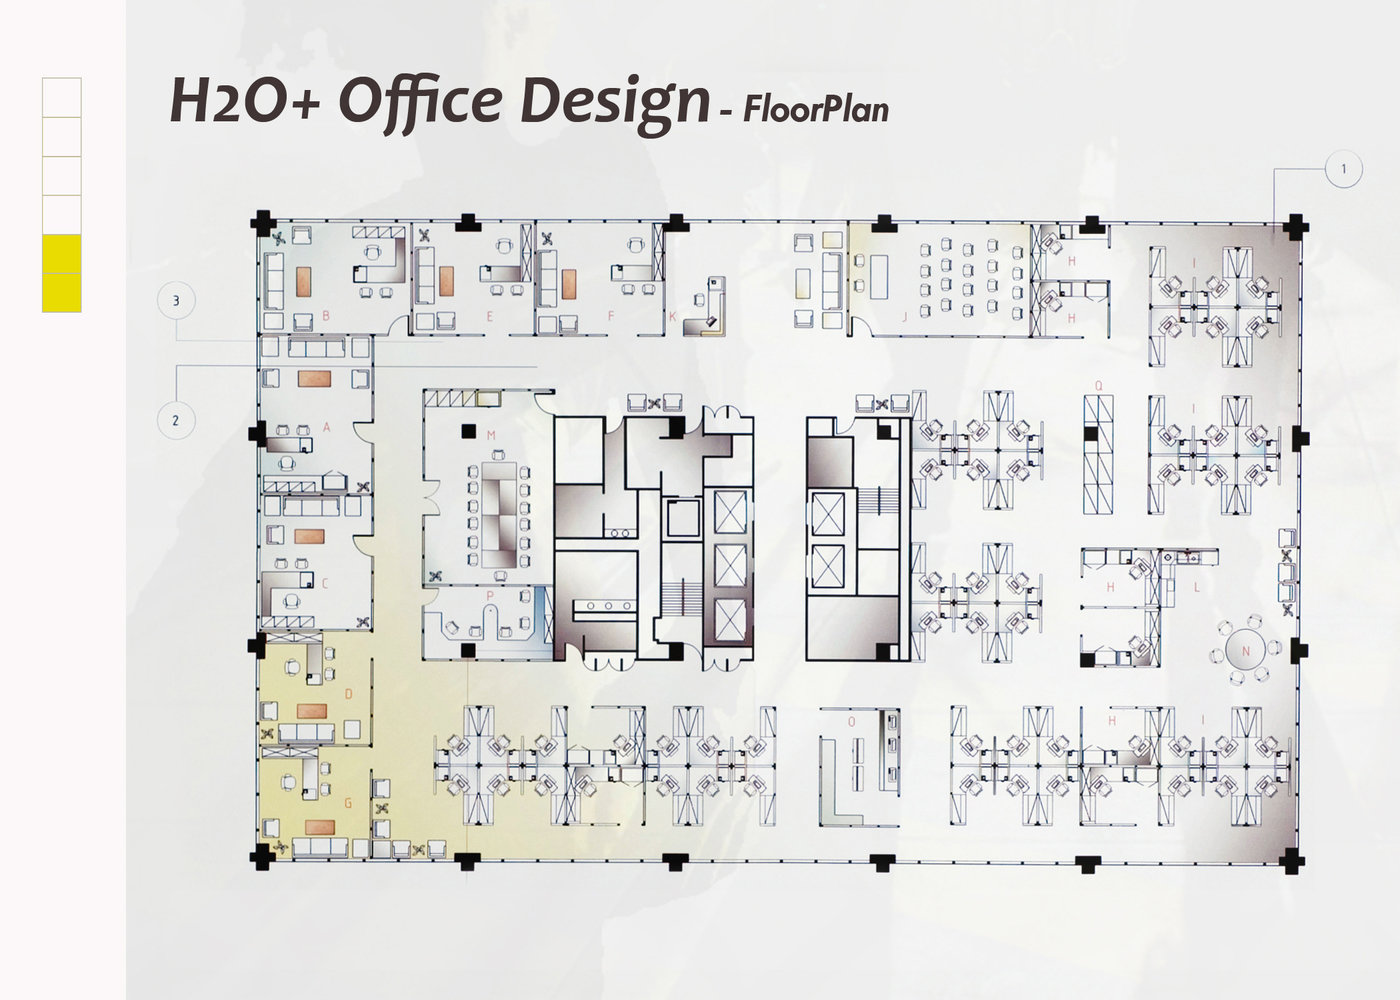 Chiropractic Office Floor Plans 60 Contemporary Designs: Pclam Student Portfolio 2009 By Pui Chi Lam At Coroflot.com